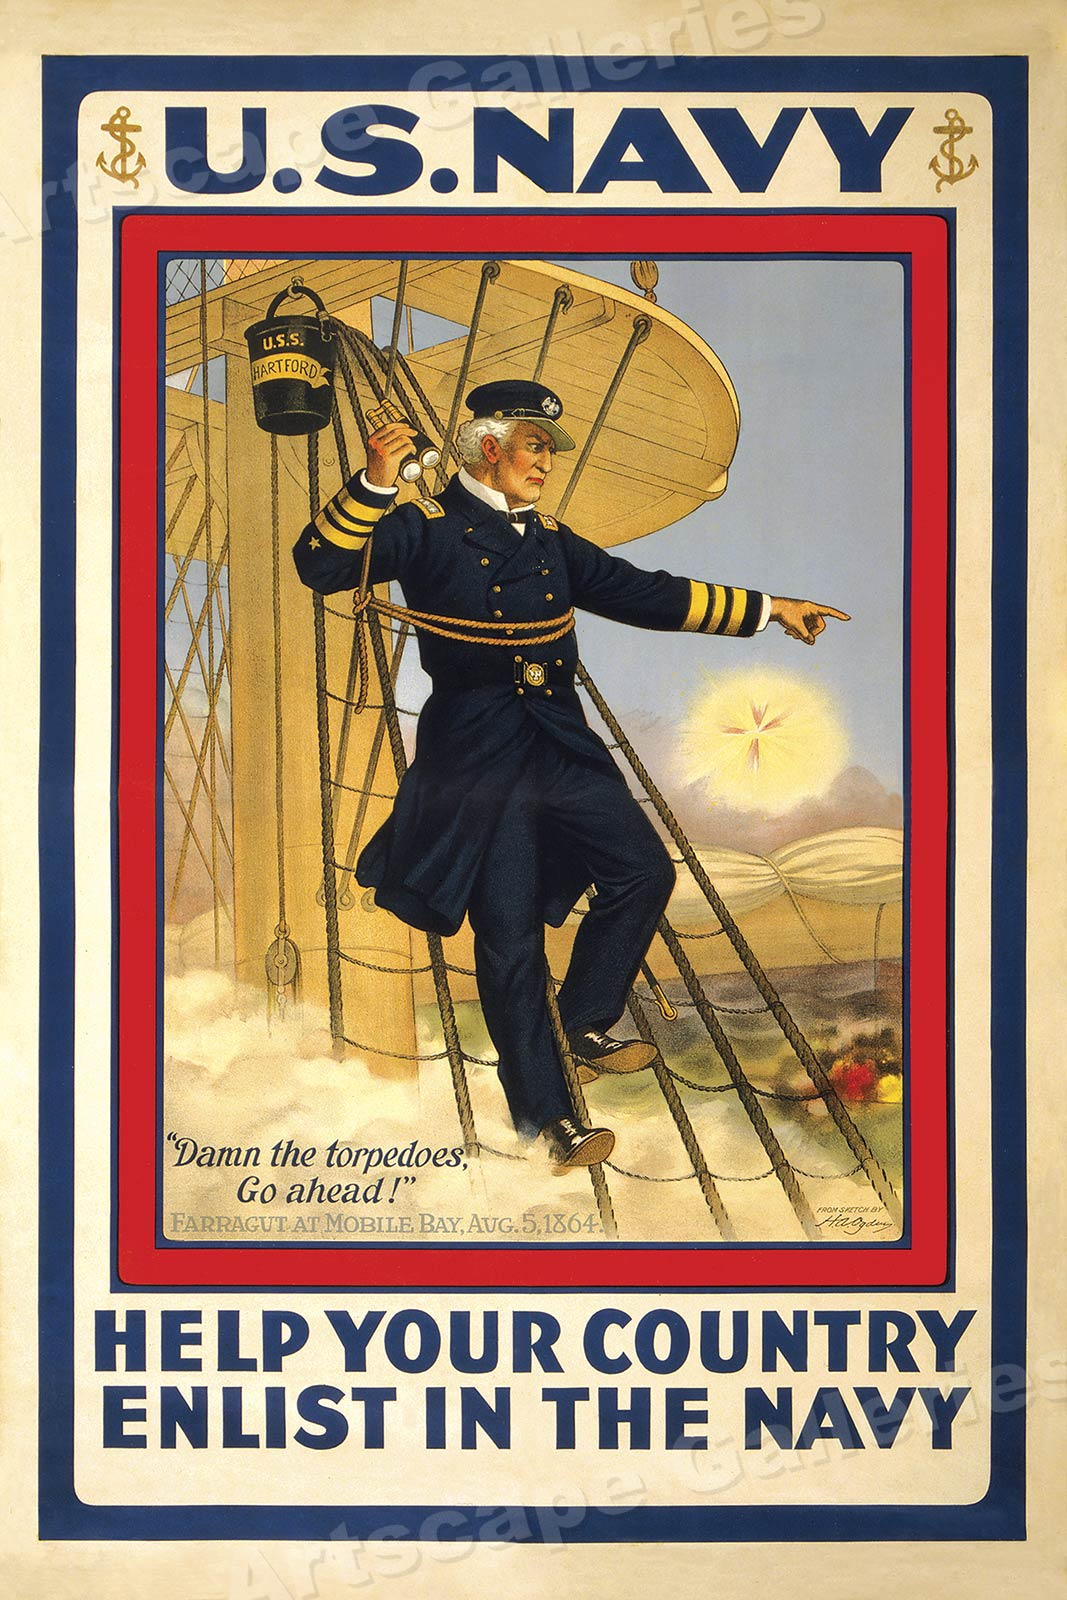 Damn the Torpedoes World War I Navy Recruiting Poster 16x24 Enlist in the Navy